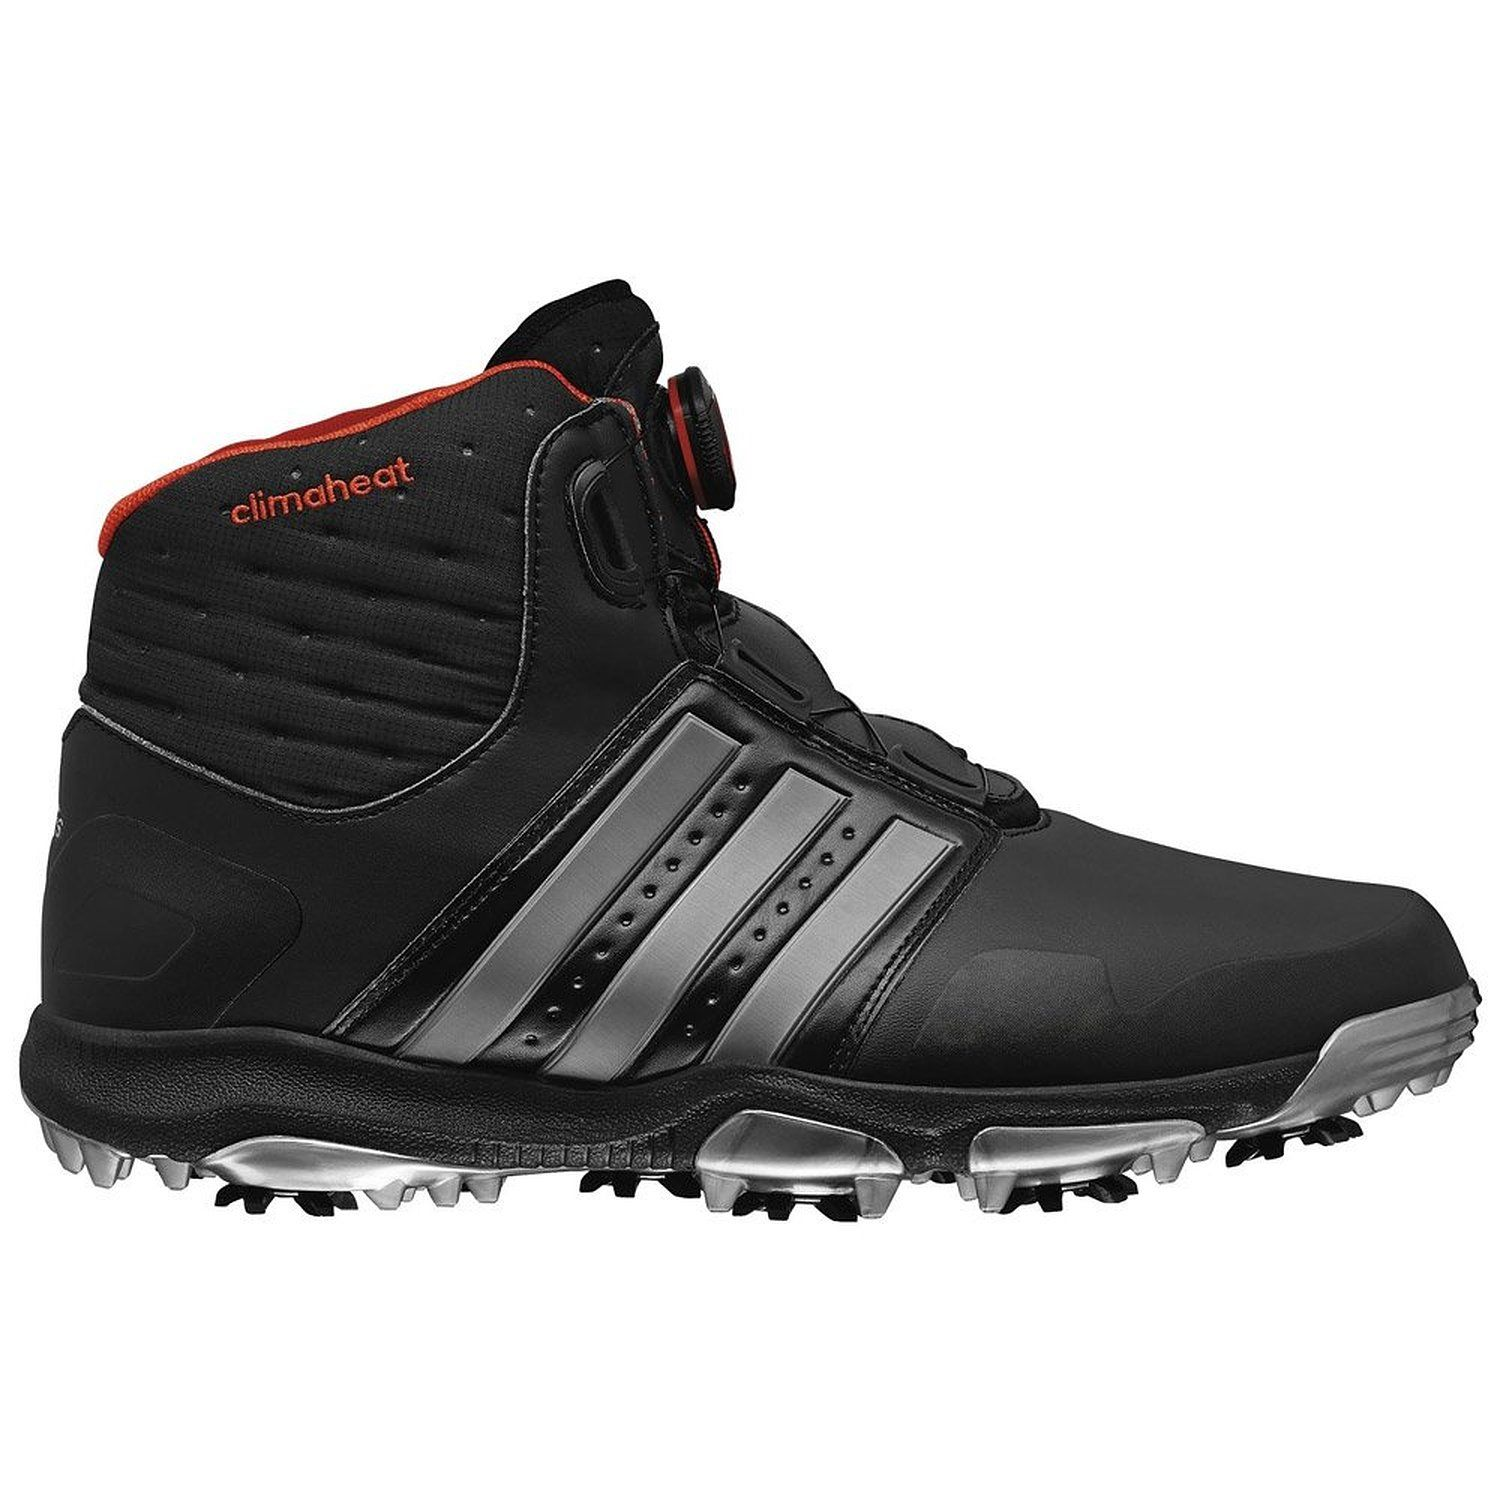 5b134e0a4c Men's Climaheat Boa Golf Shoe by Adidas | high top golf shoes ...